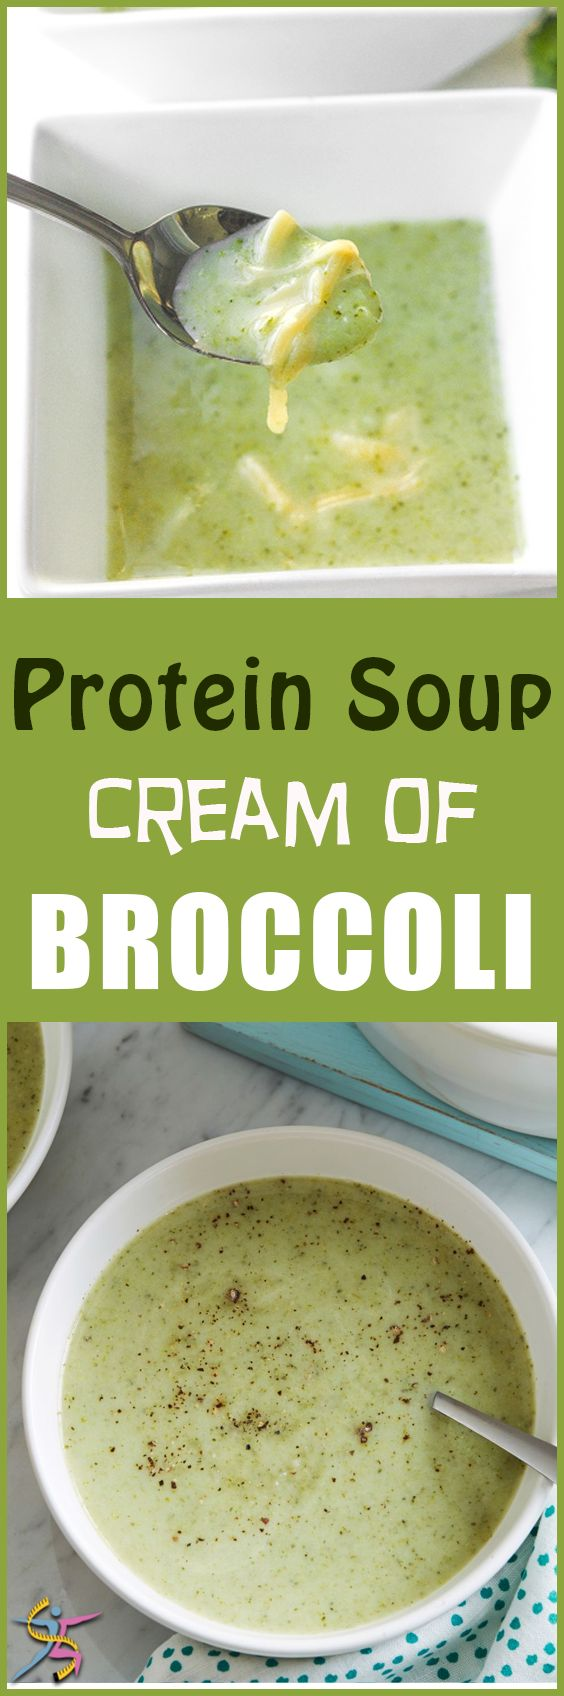 BariatricPal Protein Soup - Cream Of Broccoli  There may be times before or after weight loss surgery when your doctor puts you on a liquid diet and you need a savory alternative to sweet protein shakes. Or, you may just want a warm and filling quick meal while you�re on a high-protein weight loss diet.  BariatricPal Protein Soup is your mealtime solution. Just add water and enjoy your instant high-protein soup. BariatricPal Protein Soup � Cream of Broccoli is a creamy comfort food without…